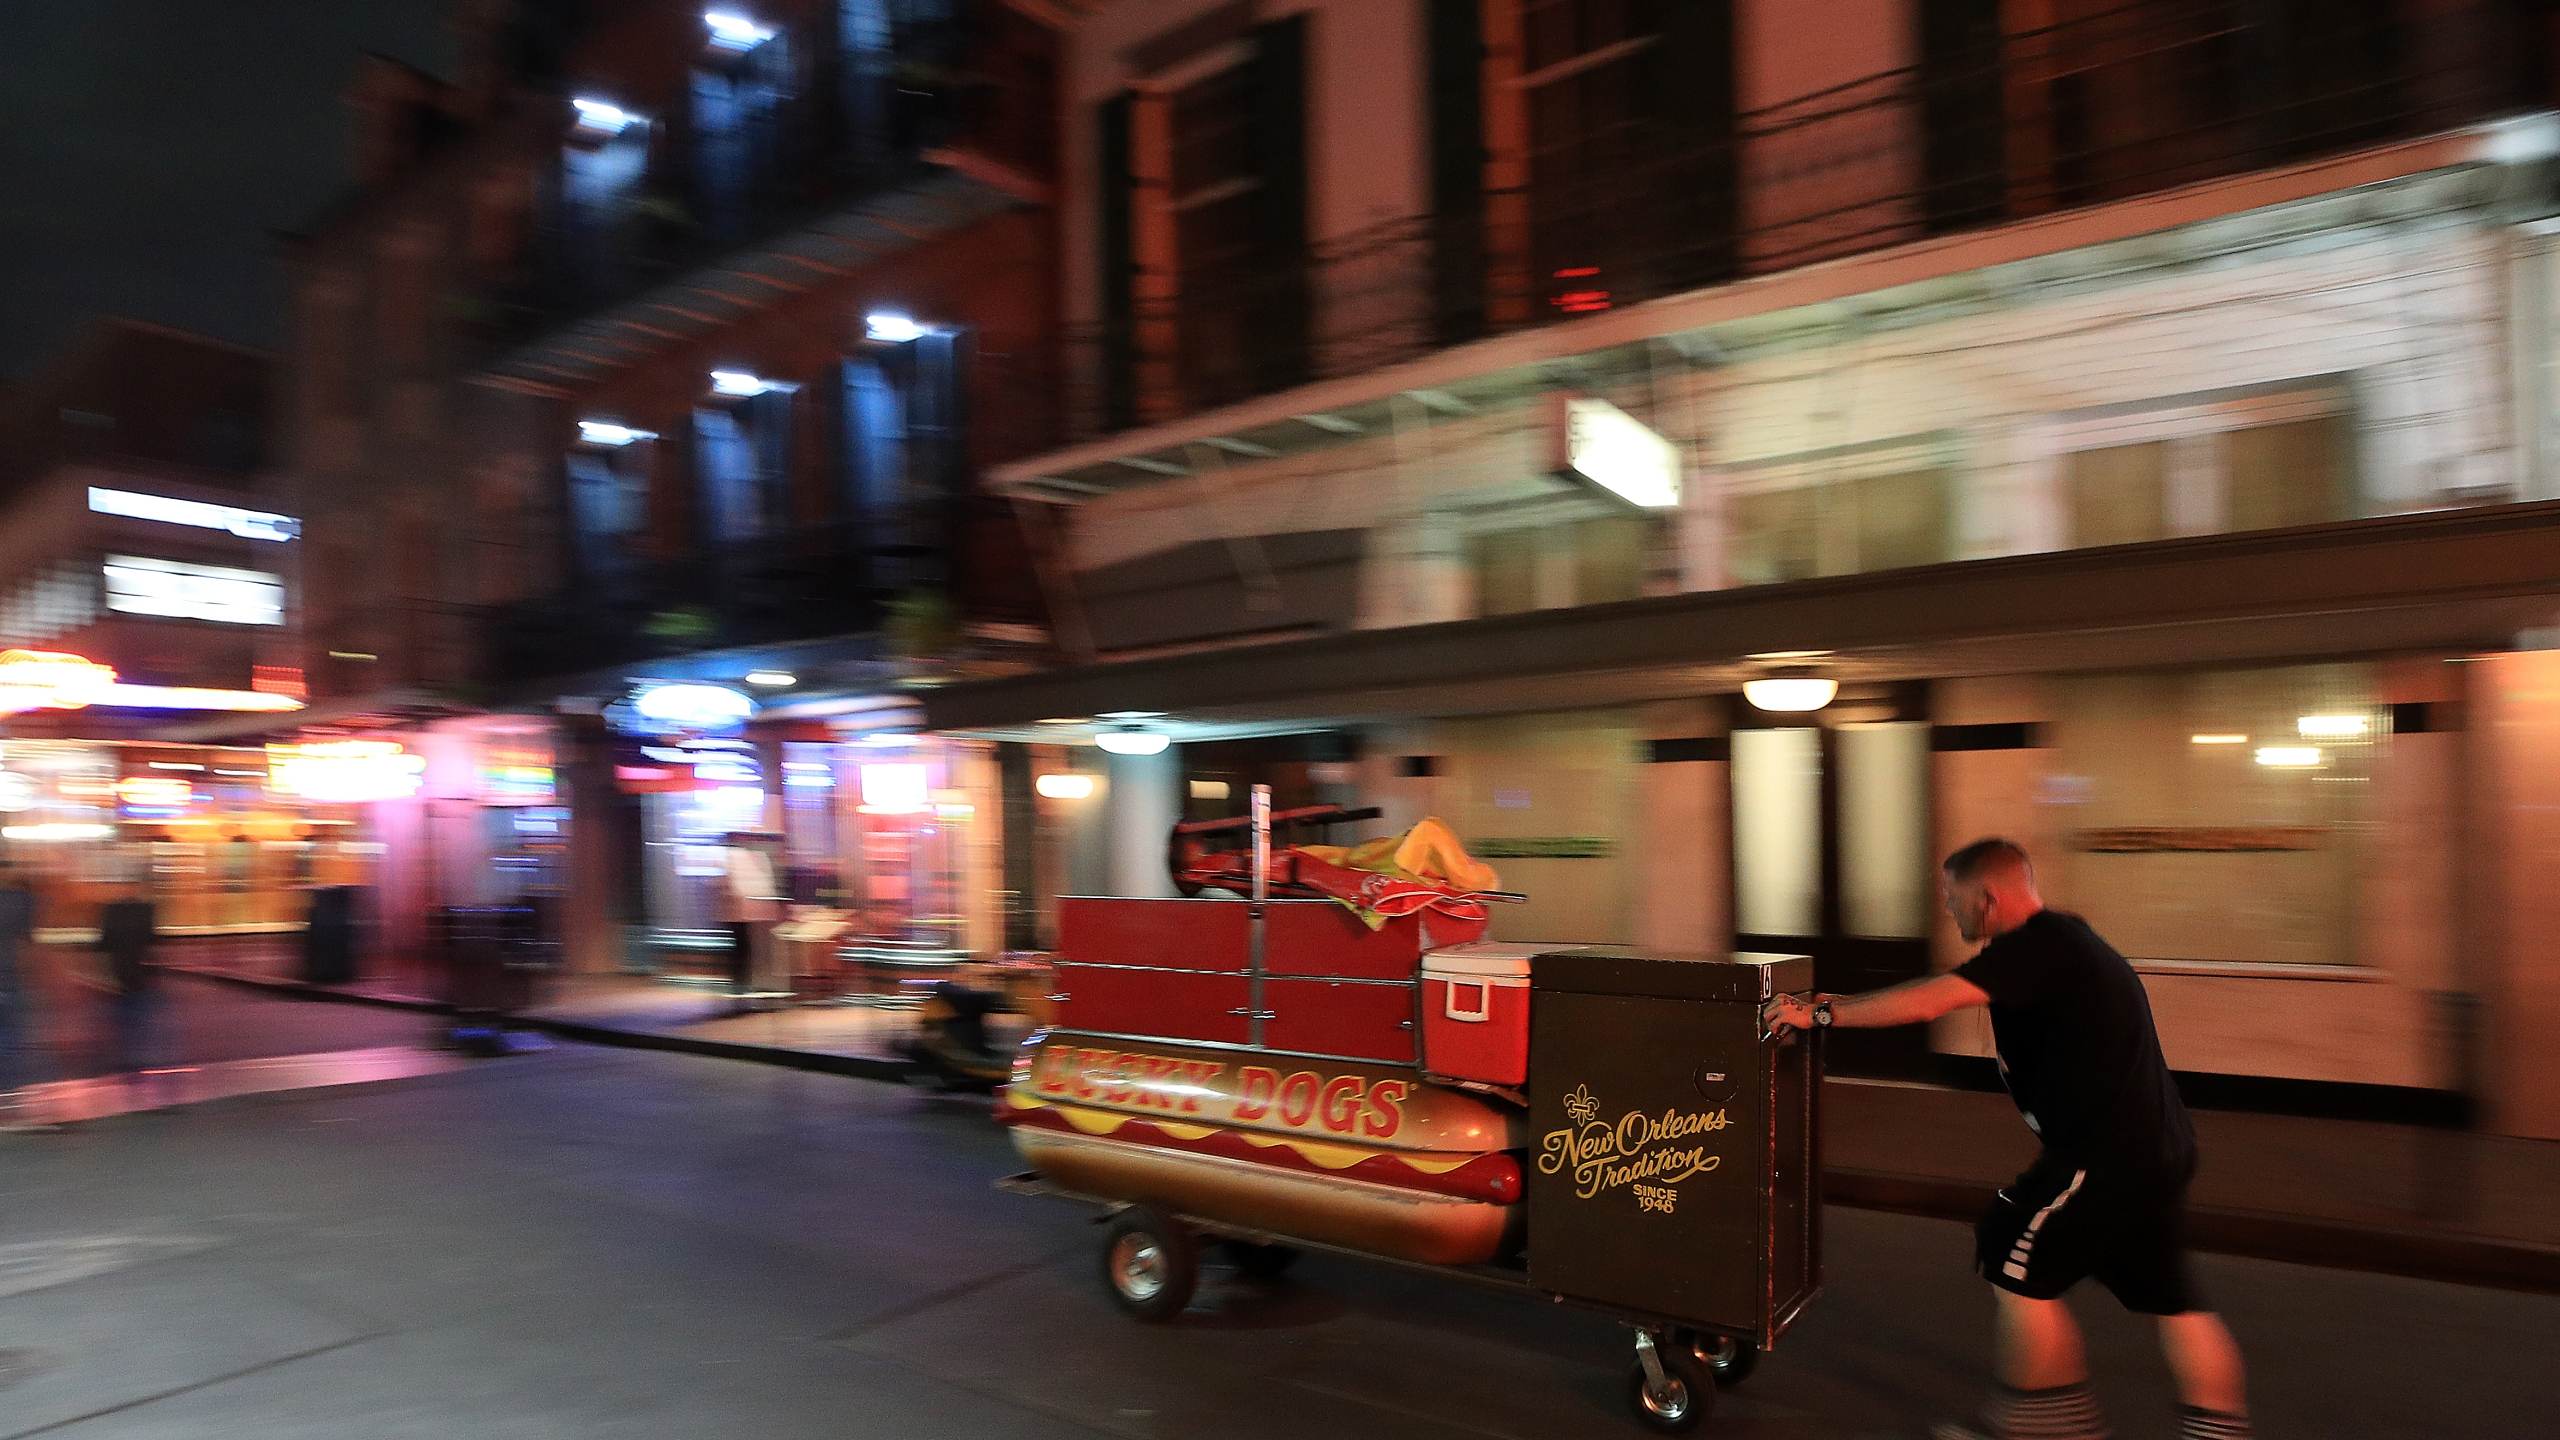 A Lucky Dog vendor leaves Bourbon Street as Louisiana Governor John Bel Edwards orders bars, gyms and casinos to close until April 13th due to the spread of coronavirus on March 16, 2020, in New Orleans, Louisiana. (Chris Graythen/Getty Images)